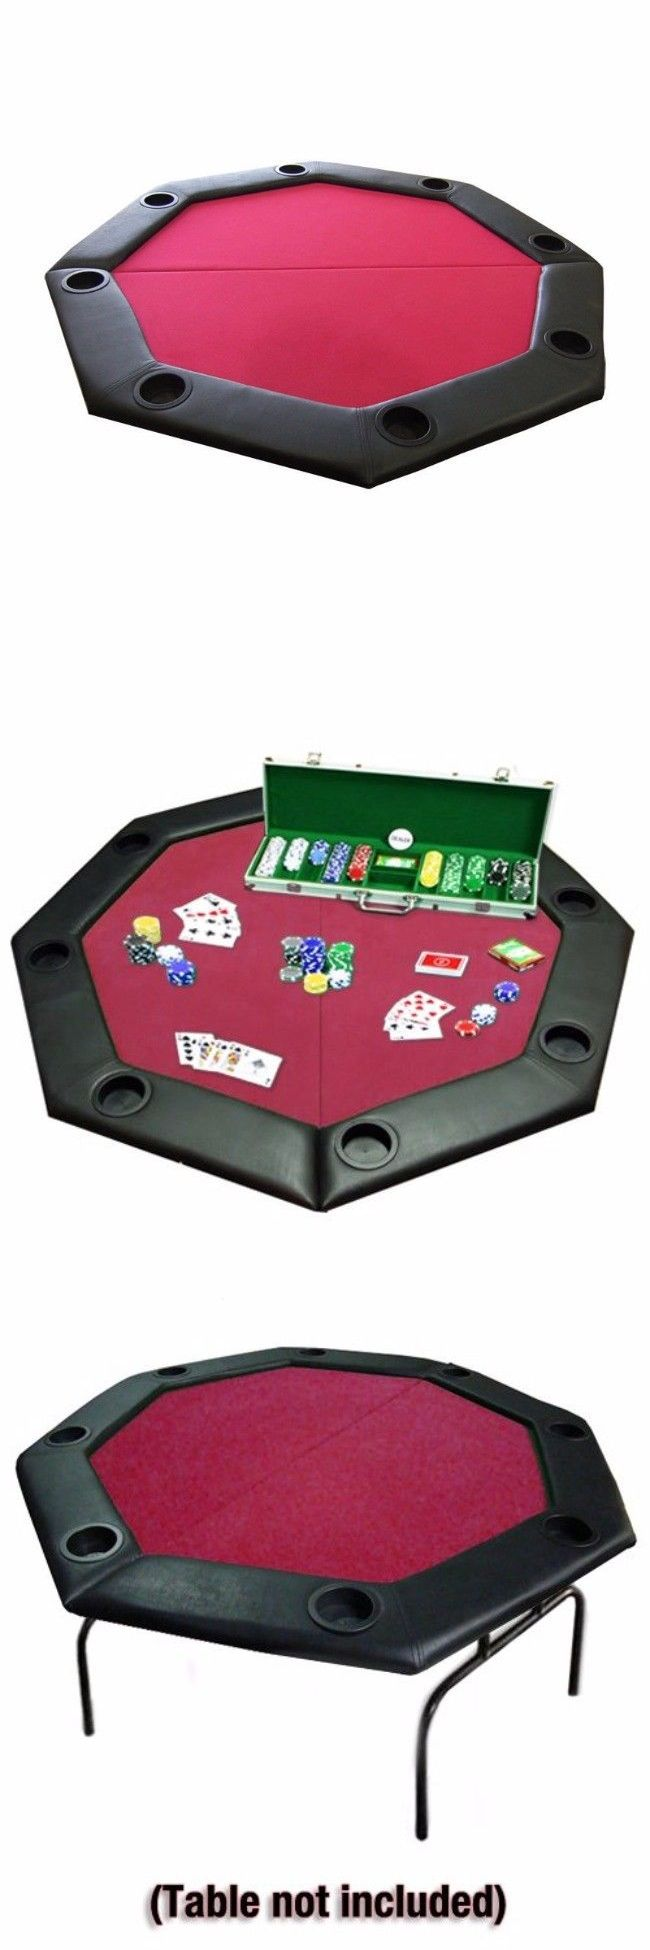 Card Tables and Tabletops 166572: Poker Table Octagon Folding Padded Rail Cup Holders Carrying Case Games Night -> BUY IT NOW ONLY: $128.05 on eBay!